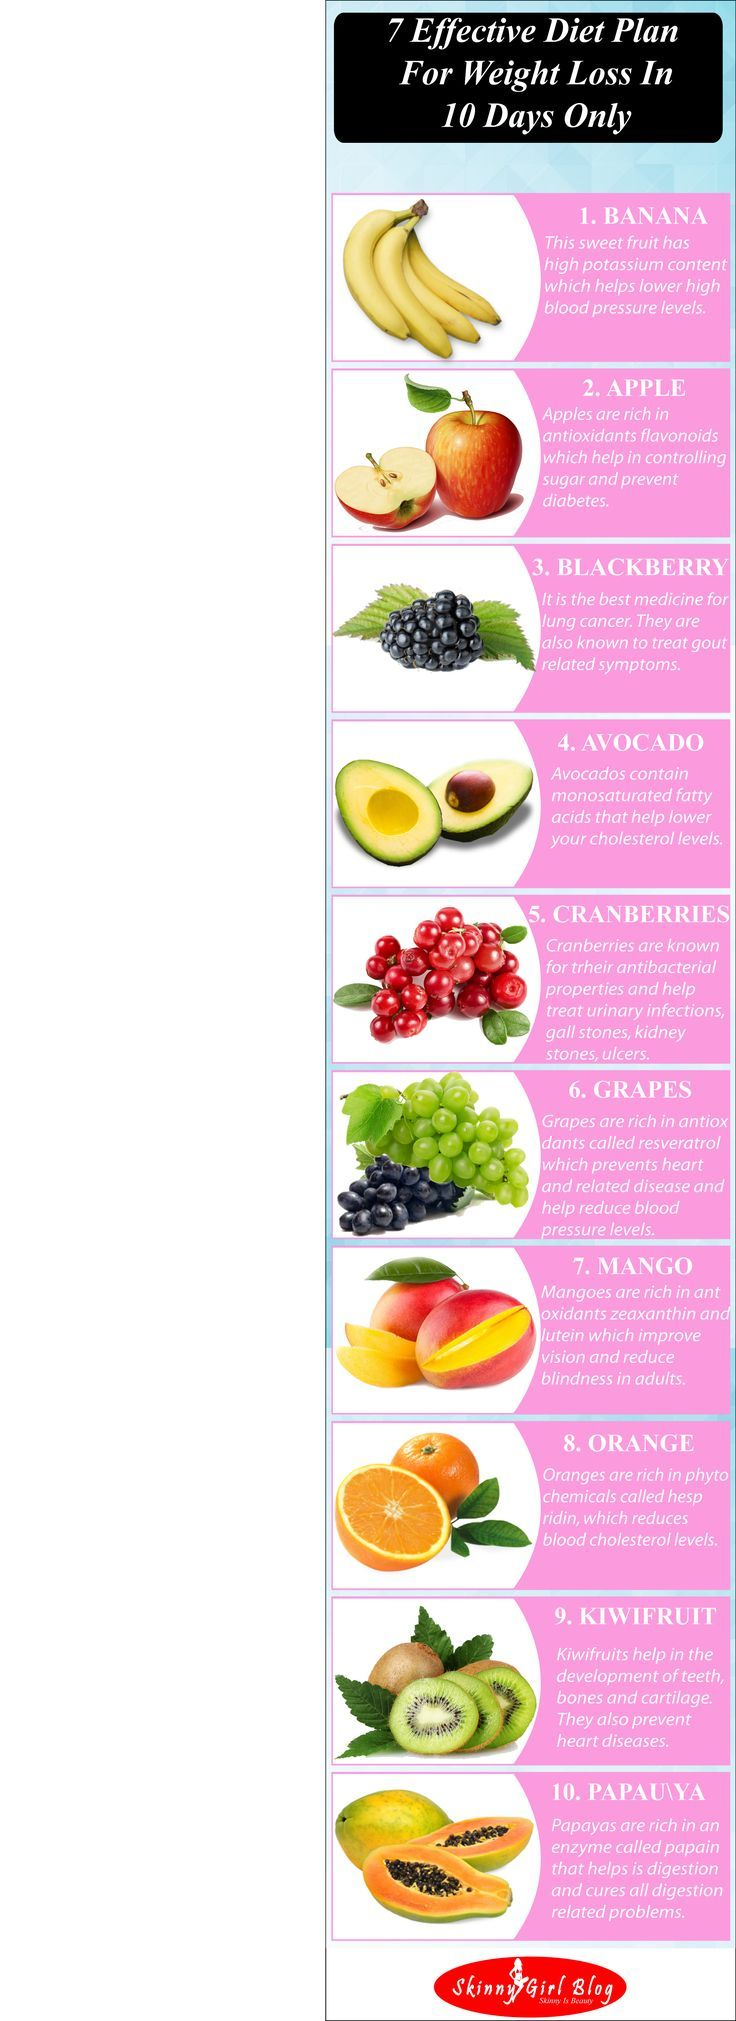 Food Plans Weight Loss :   Illustration   Description  Diet is a science, A proper diet plan is the key part of your weight loss journey. Find 7 Effective Diet Plan For Weight Loss In 10 Days Only    Eat the best, leave the rest !    -Read More –   - #DietsWeightLoss https://healthcares.be/diets-weight-loss/food-plans-weight-loss-diet-is-a-science-a-proper-diet-plan-is-the-key-part-of-your-weight-loss-journe-13/